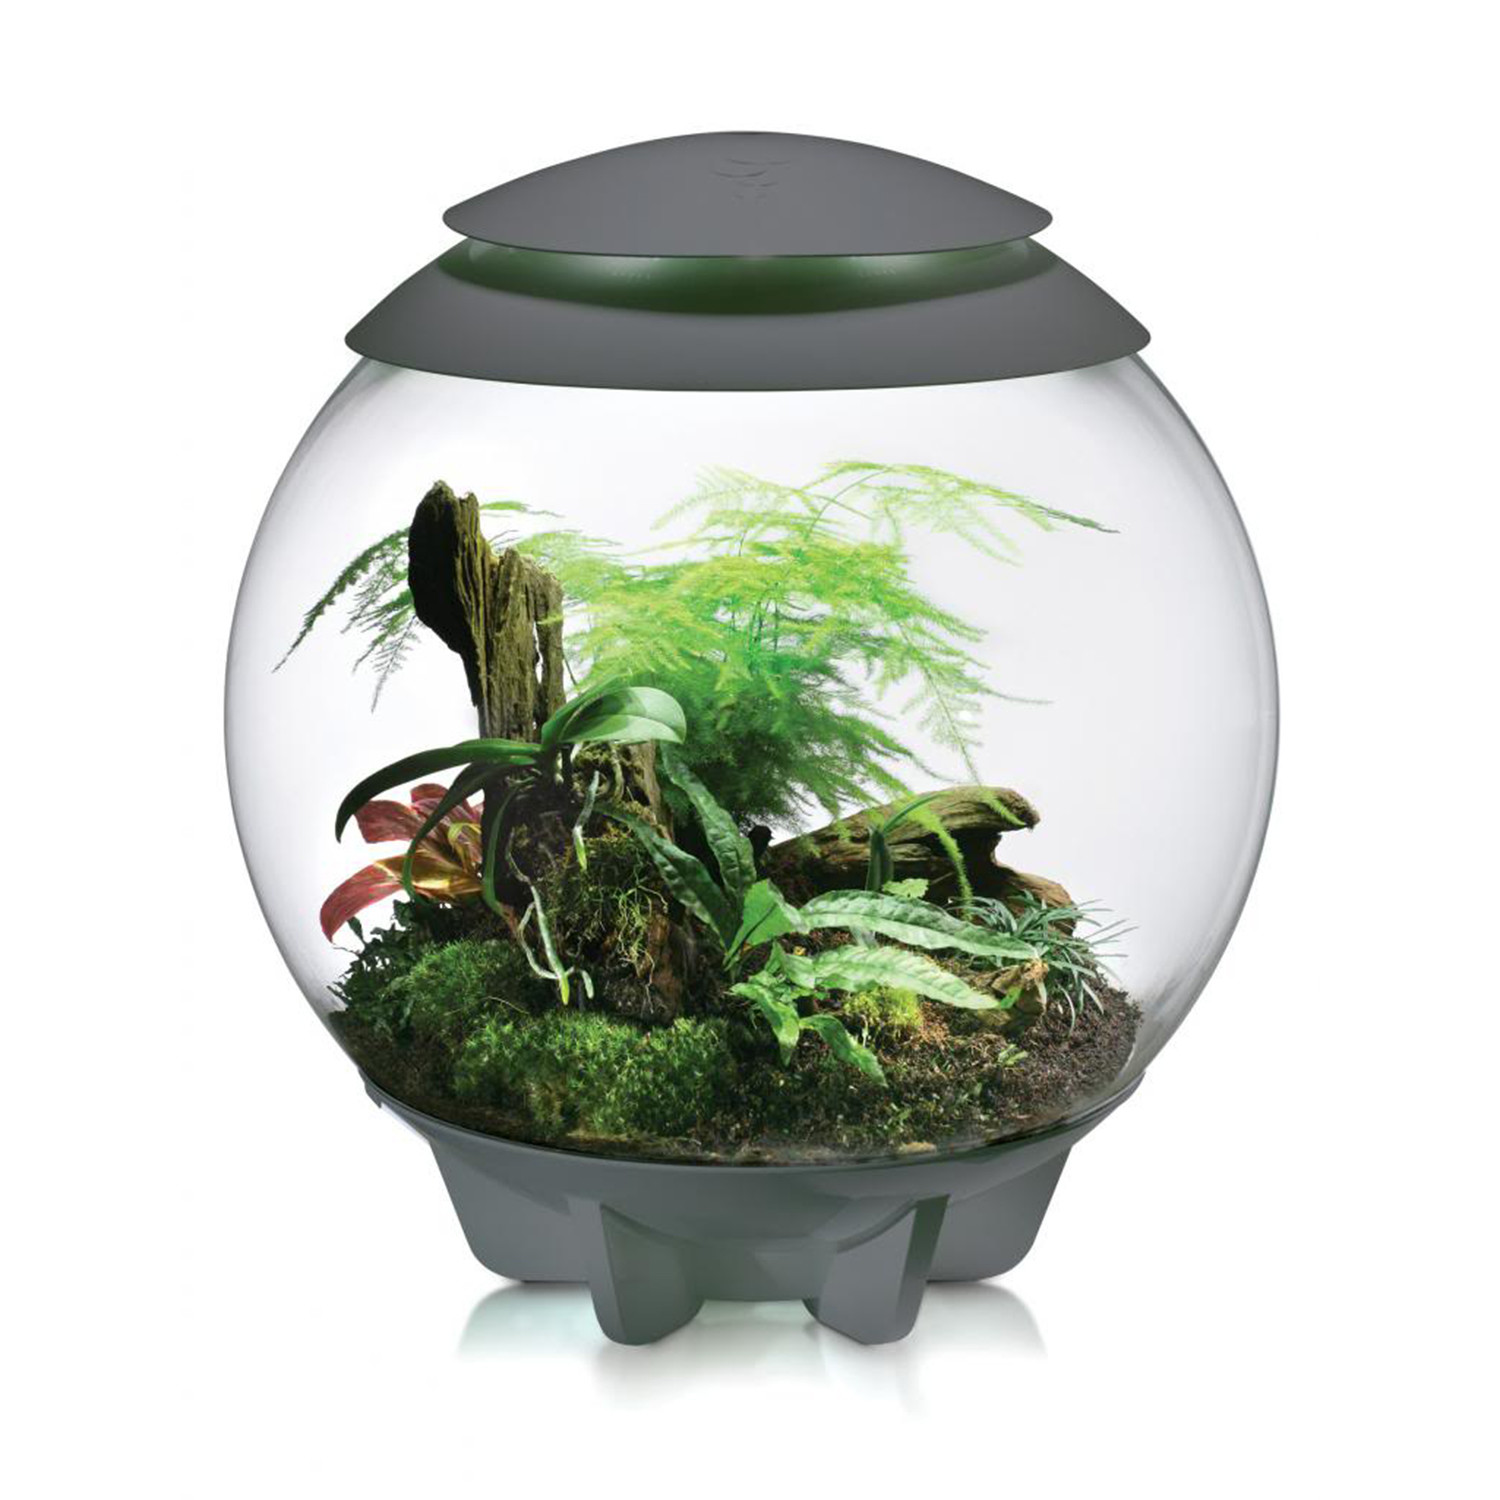 Biorb Air Terrarium Grey Biorb Air Terrarium Touch